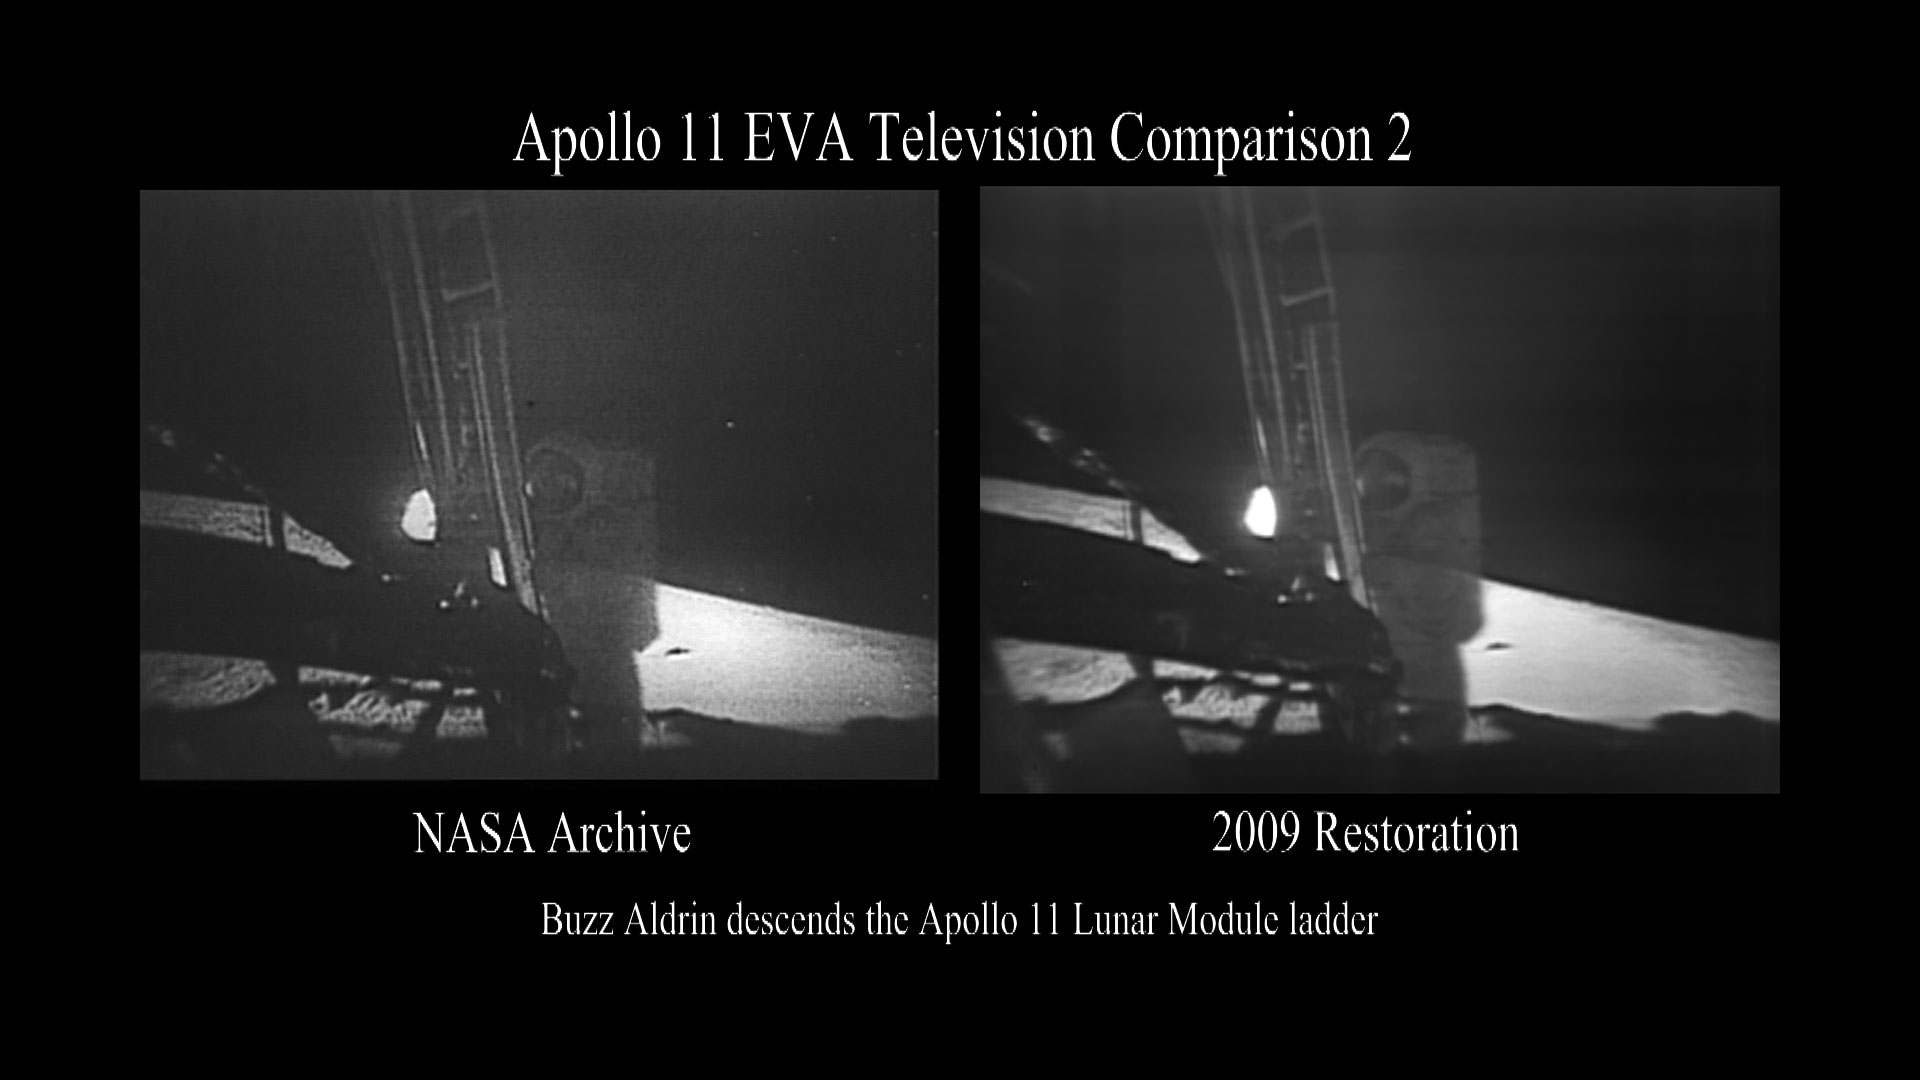 NVIDIA CUDA Technology Used To Recover Historic APOLLO 11 Man On The